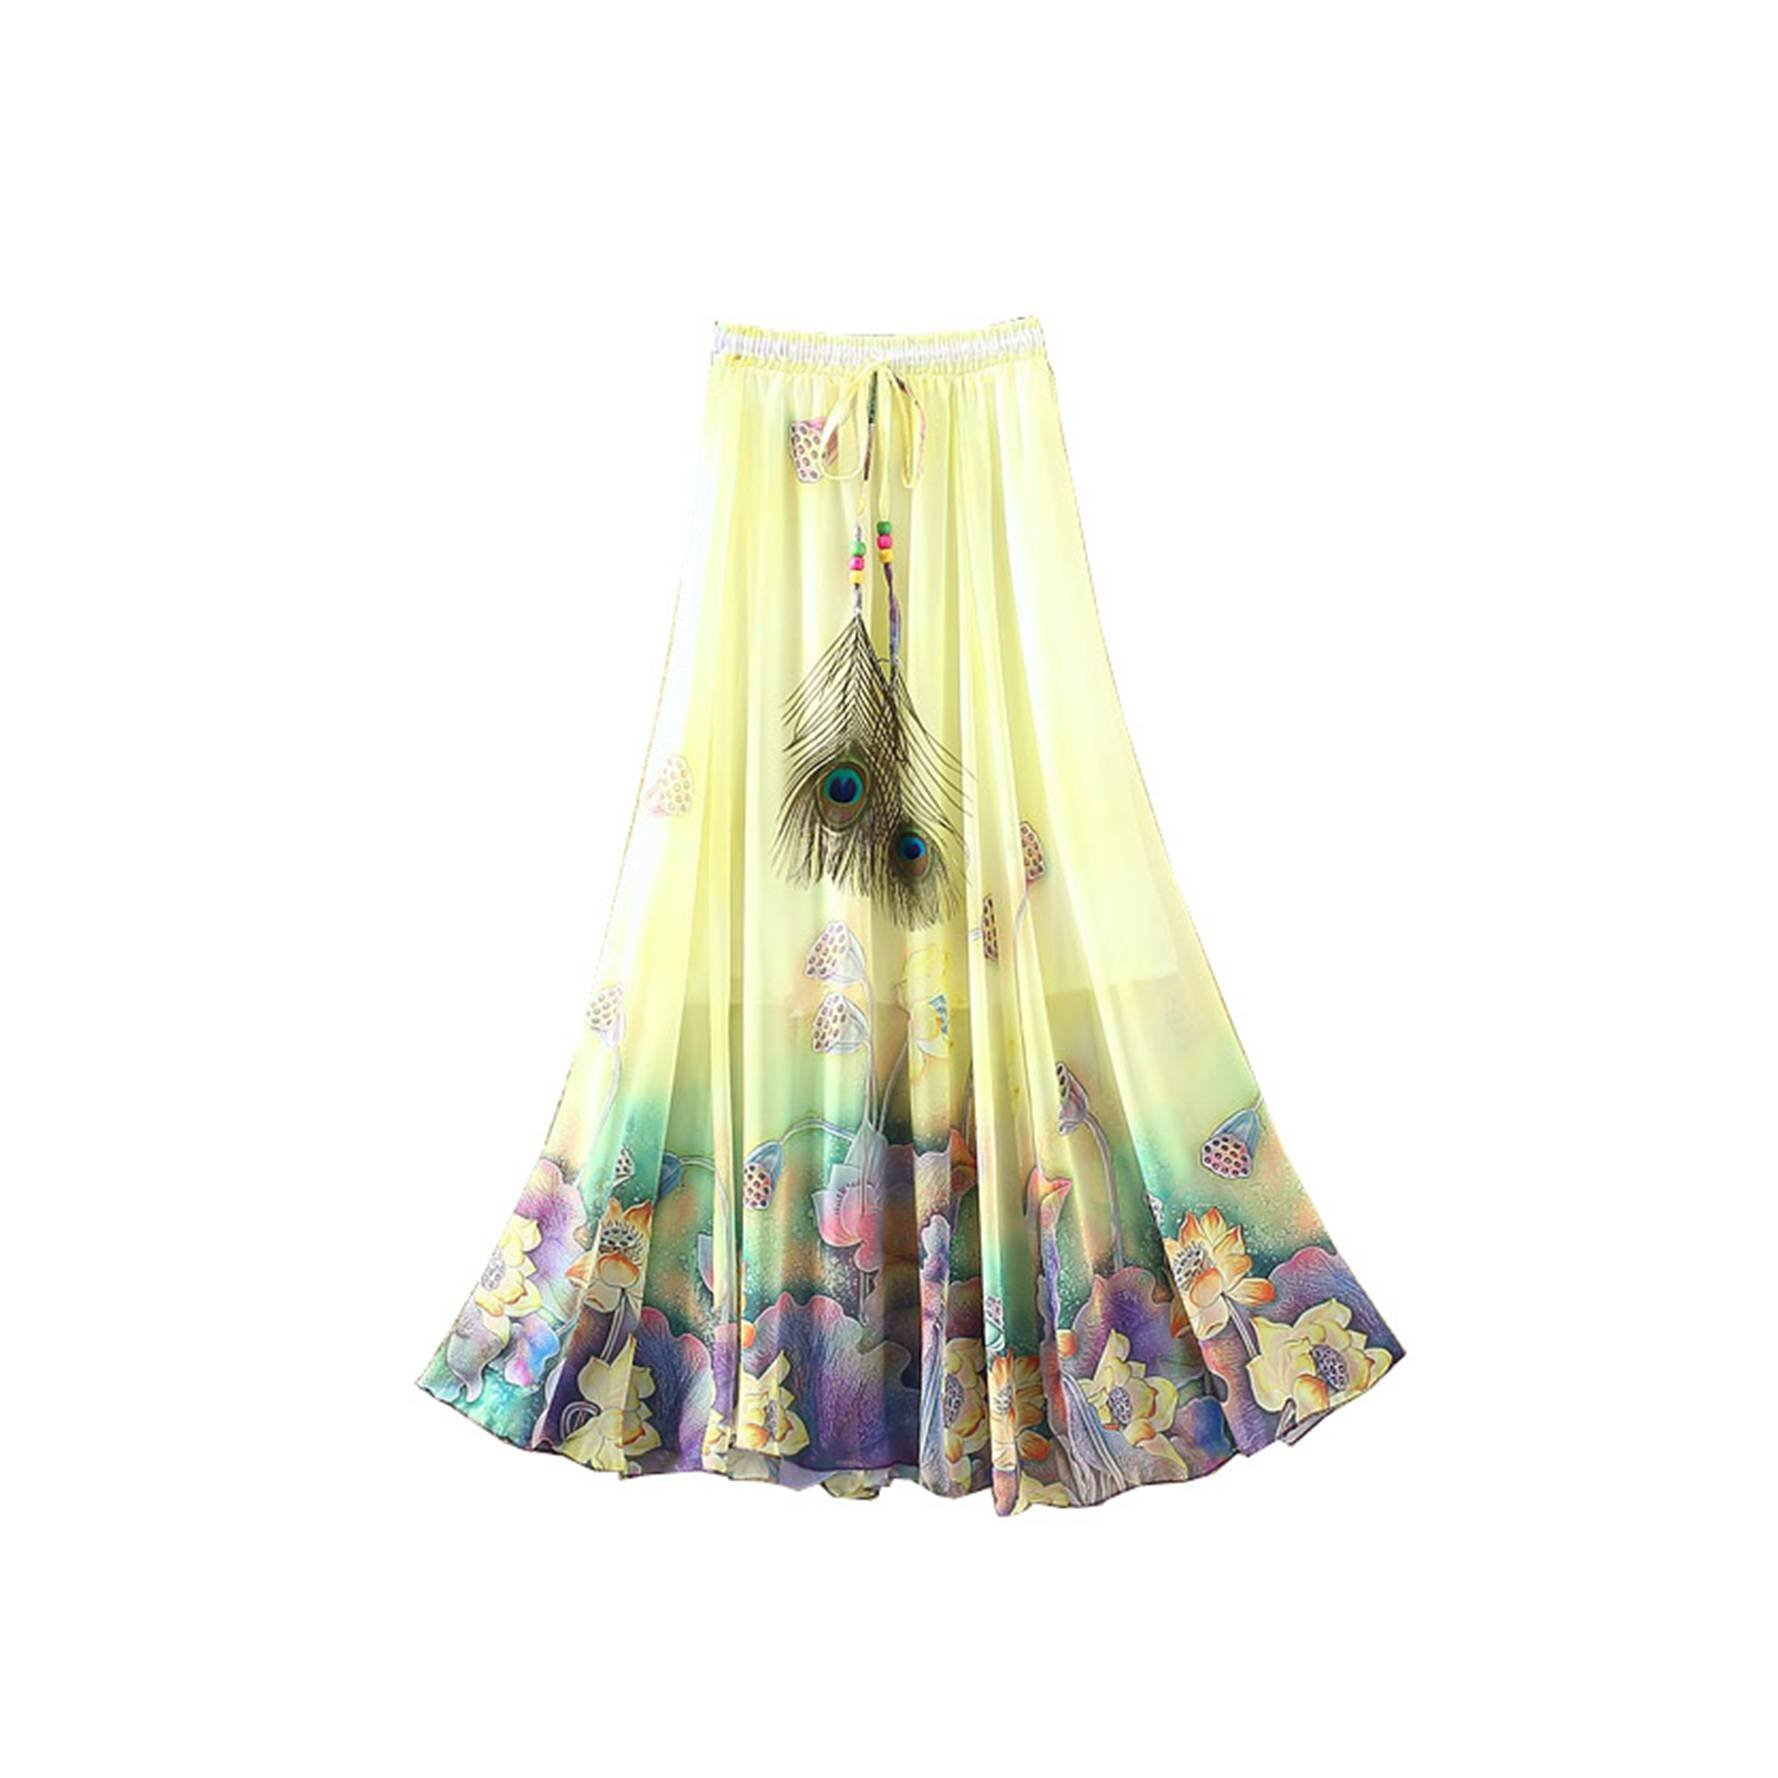 Kaxuyiiy Women's Peacock Feather Boho Lotus Flower Beach Party Maxi Long Skirt (Yellow)